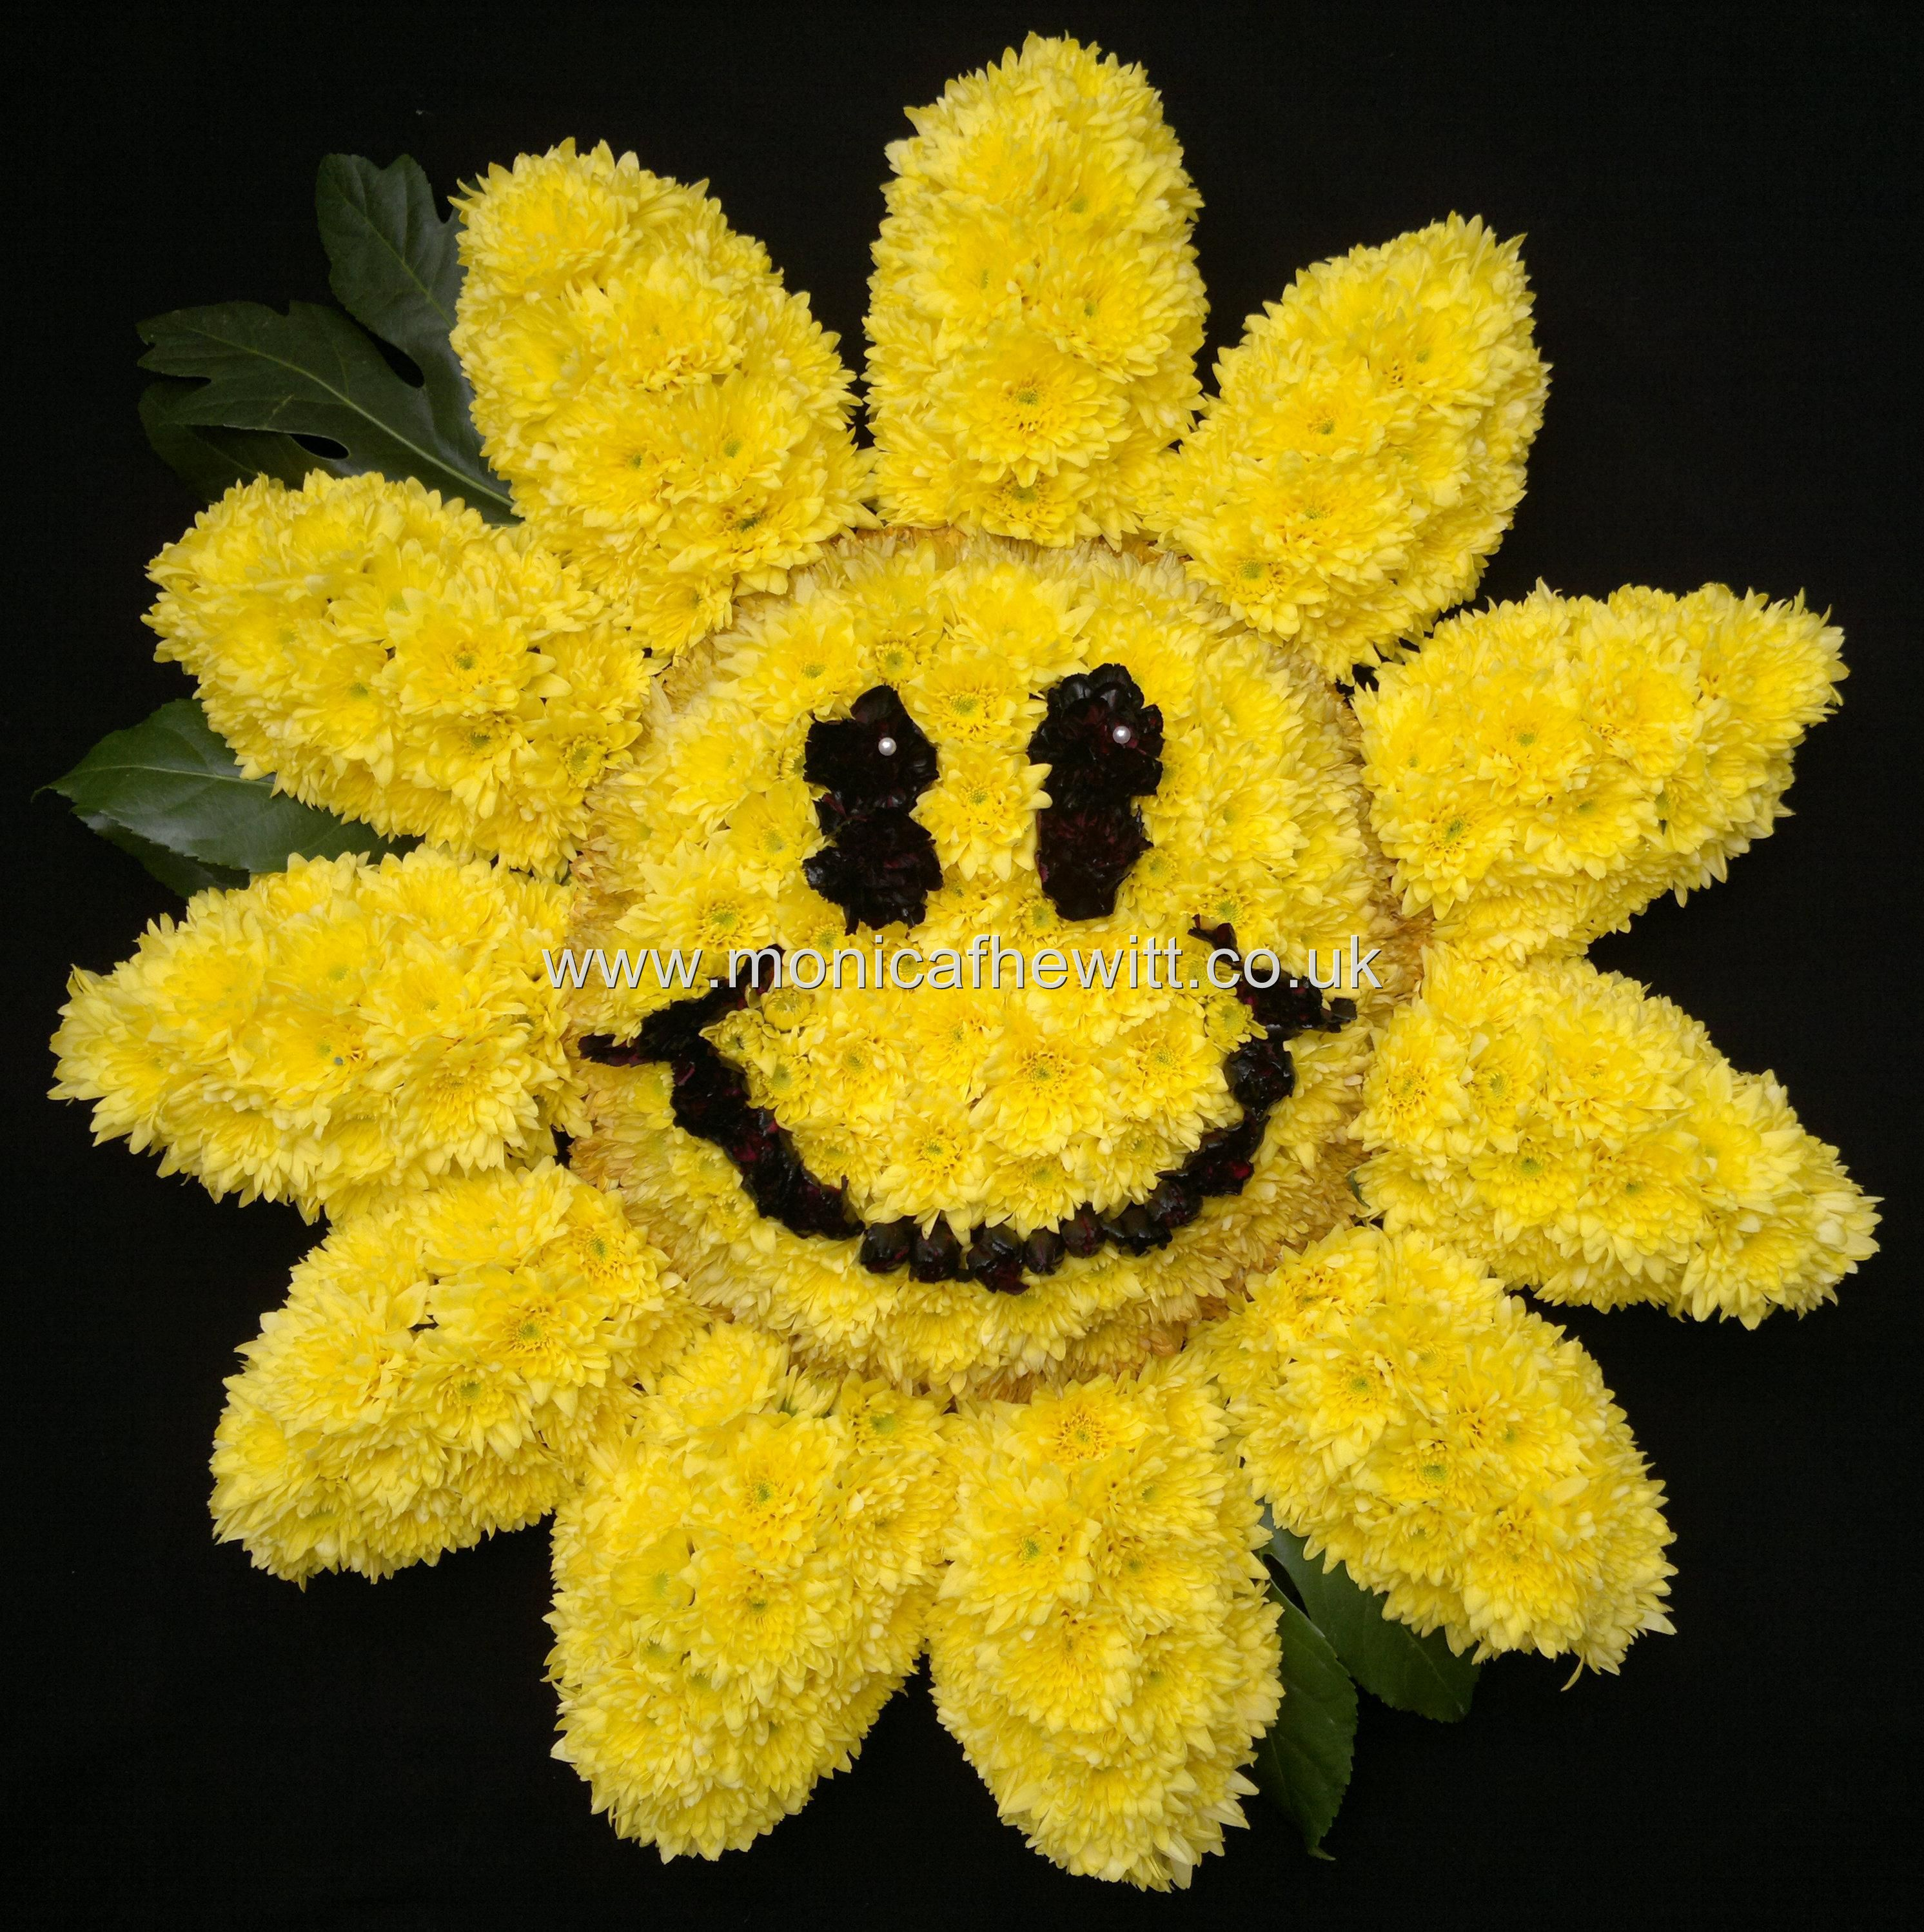 Sunflower smiley funeral flowers monica f hewitt florist sheffield sunflower smiley funeral flowers monica f hewitt florist sheffield izmirmasajfo